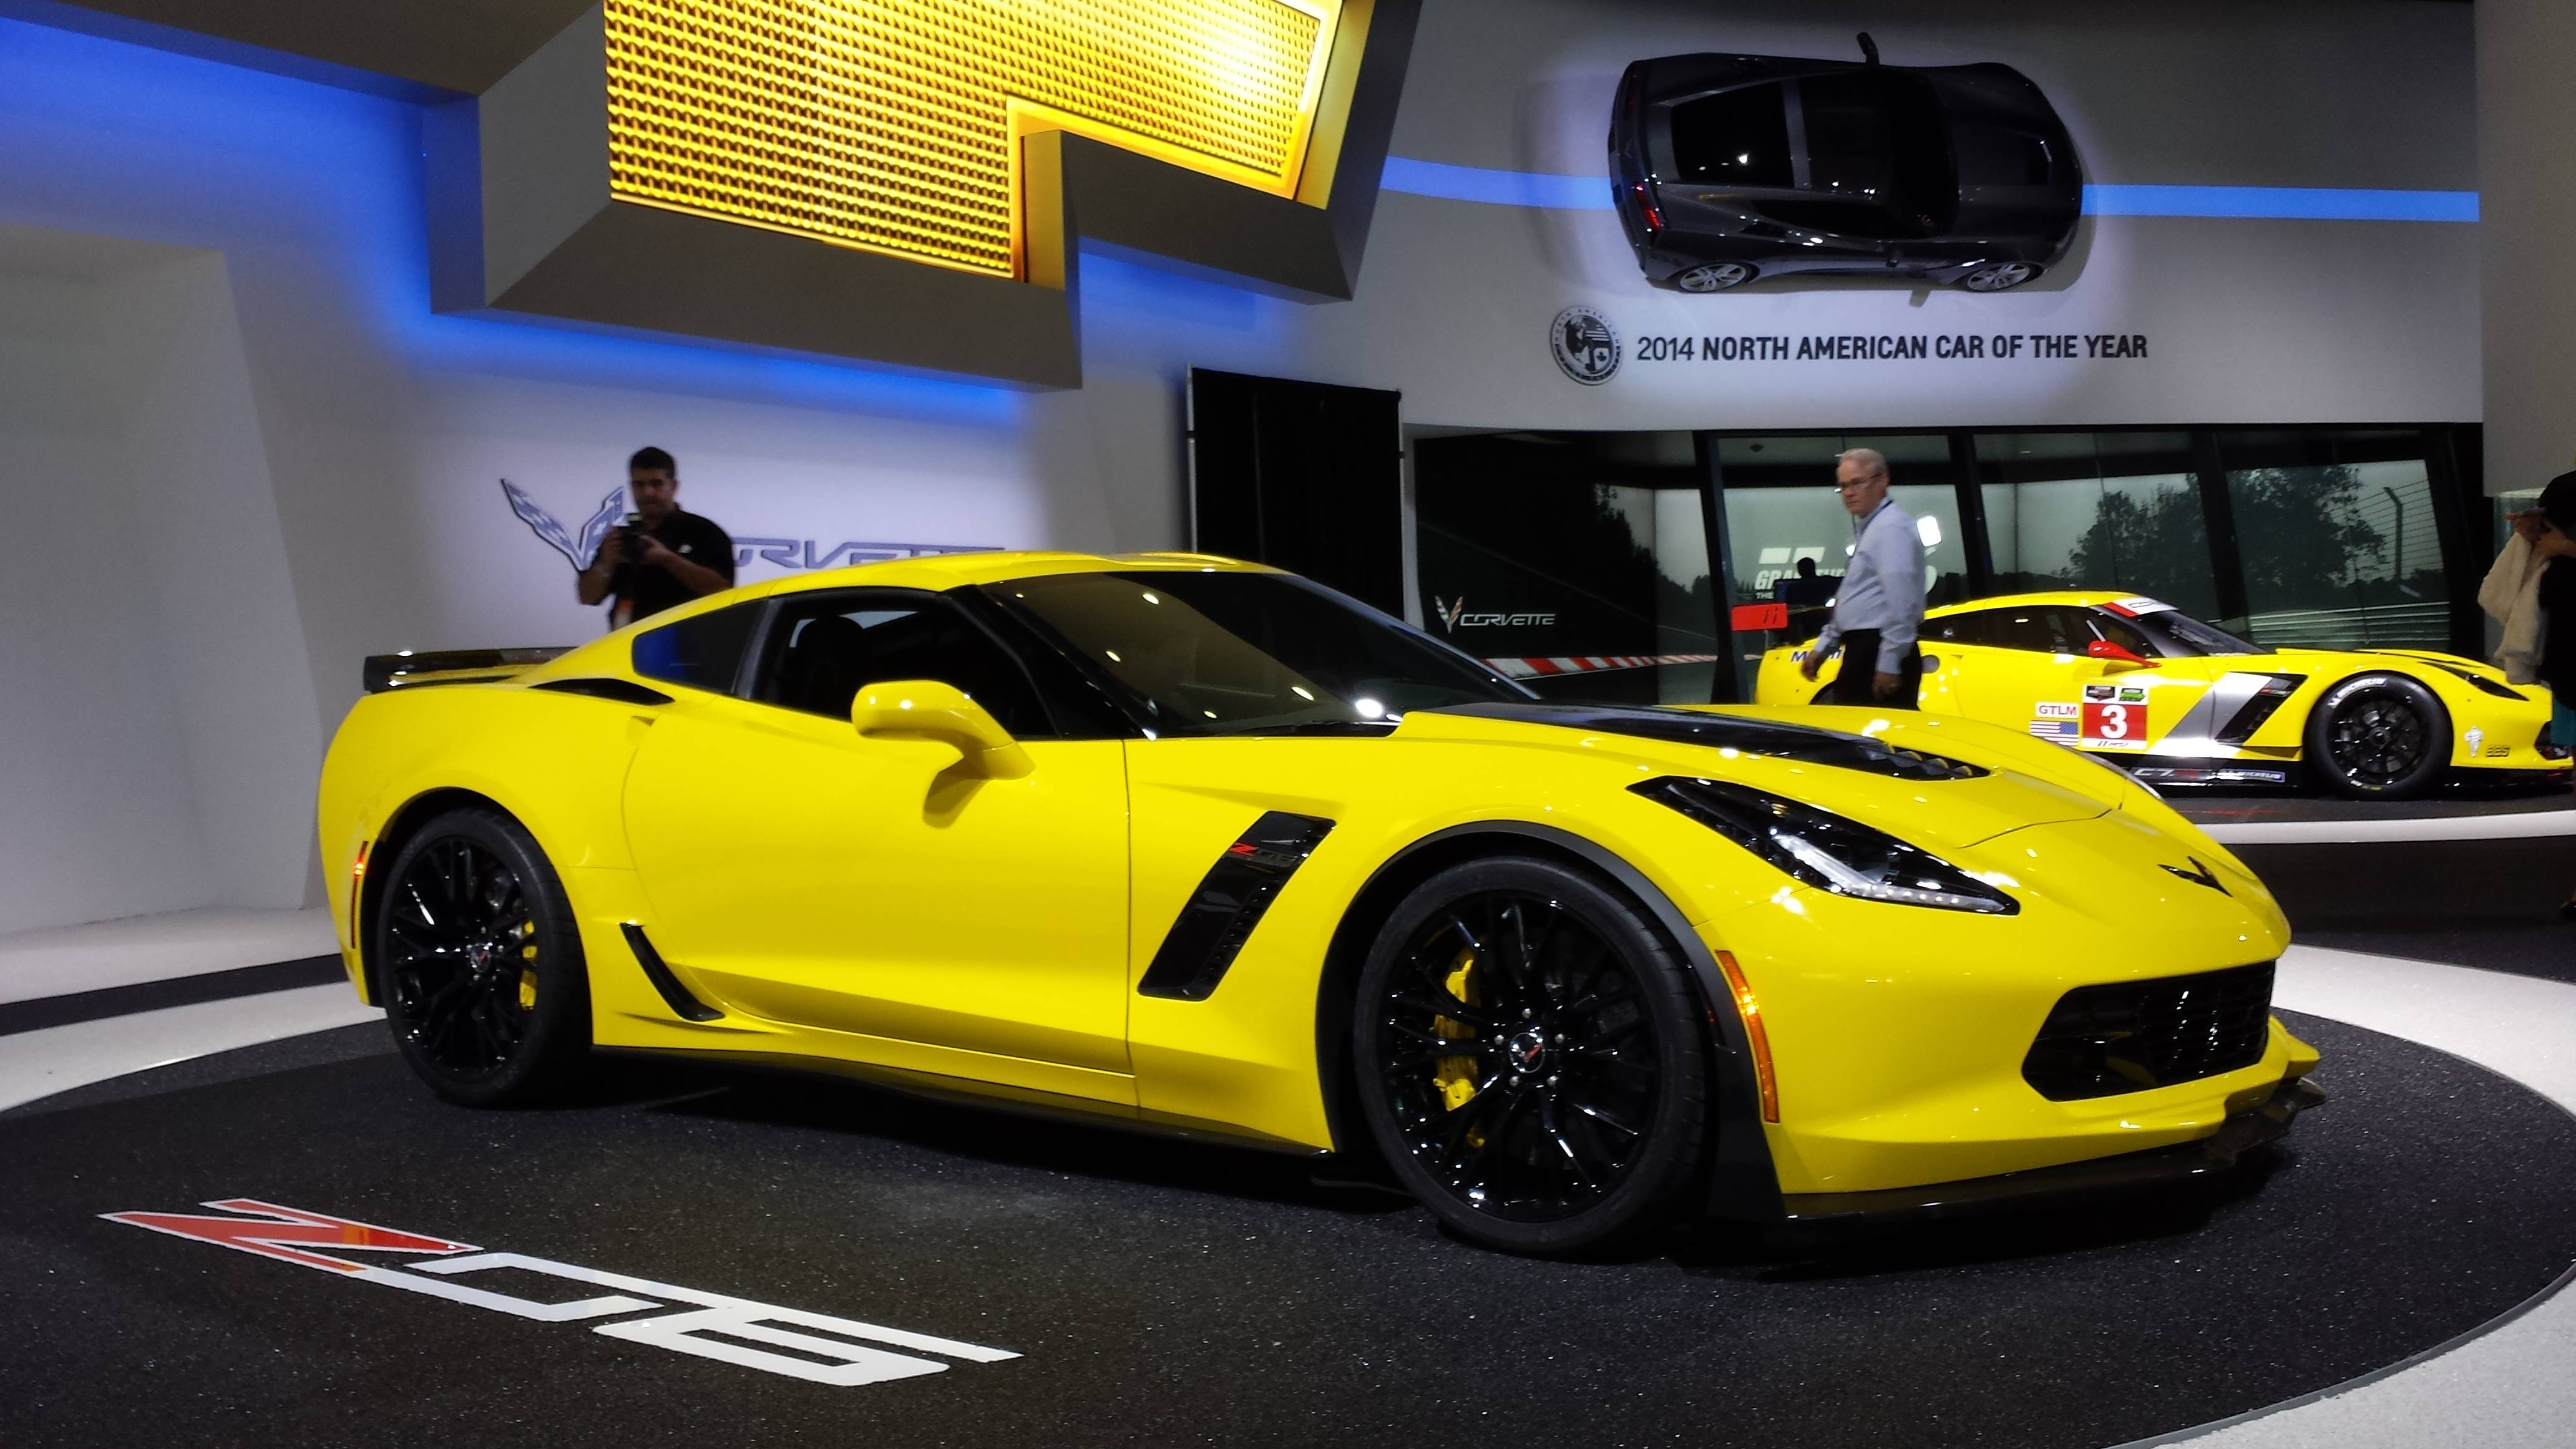 Corvette Stingray 2015 Wallpapers - Wallpaper Cave